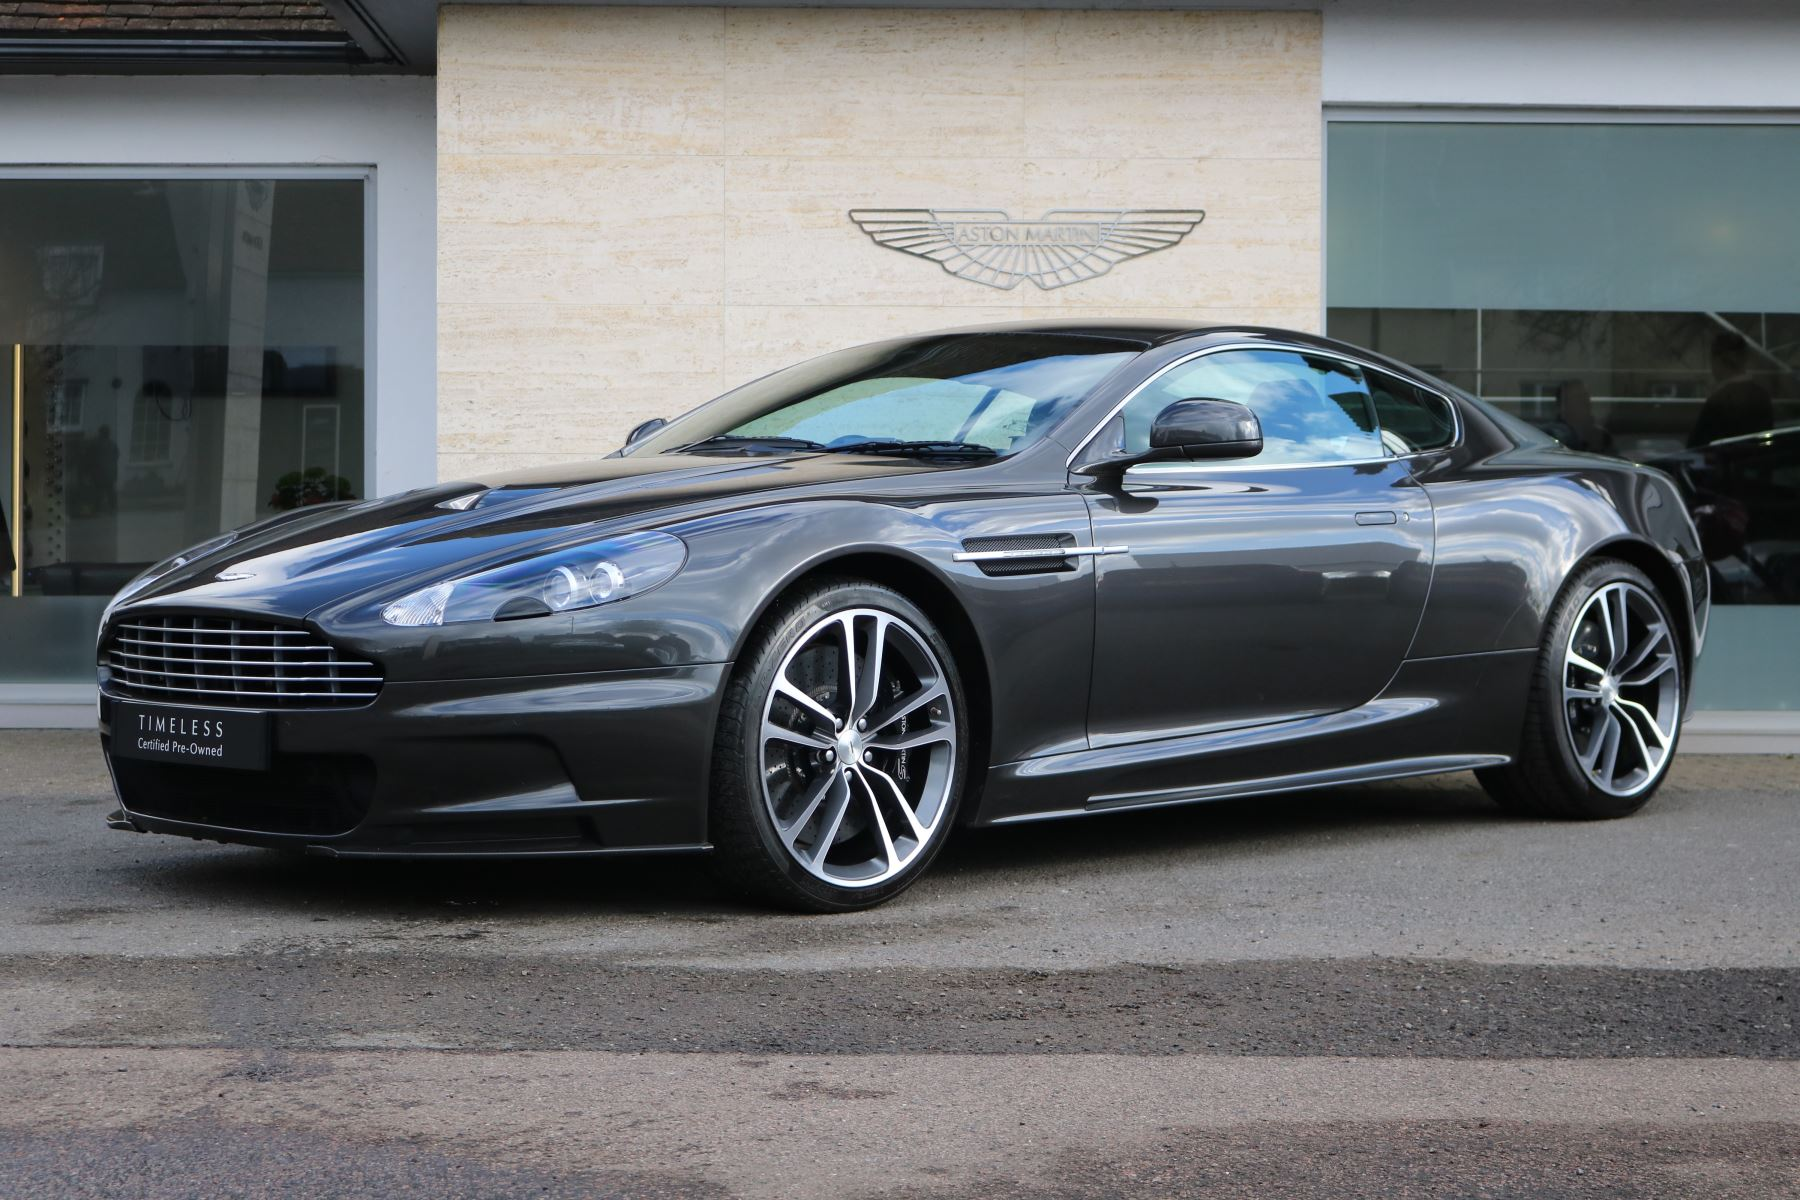 Aston Martin DBS V12 2dr Touchtronic 5.9 Automatic Coupe (2011) image